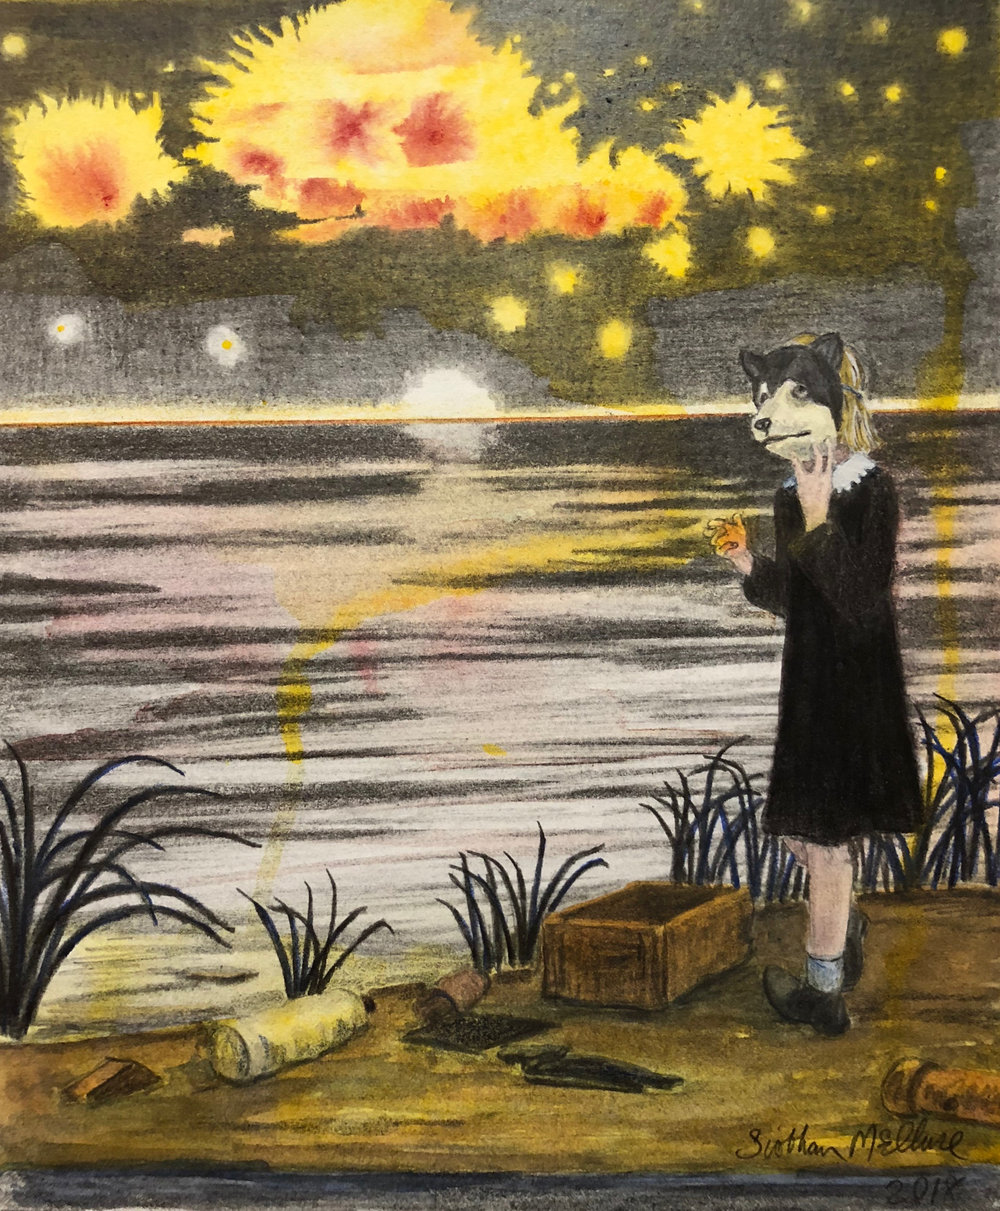 Shy Girl from The Salt Marsh Chronicle, Yellow Salt , 2018